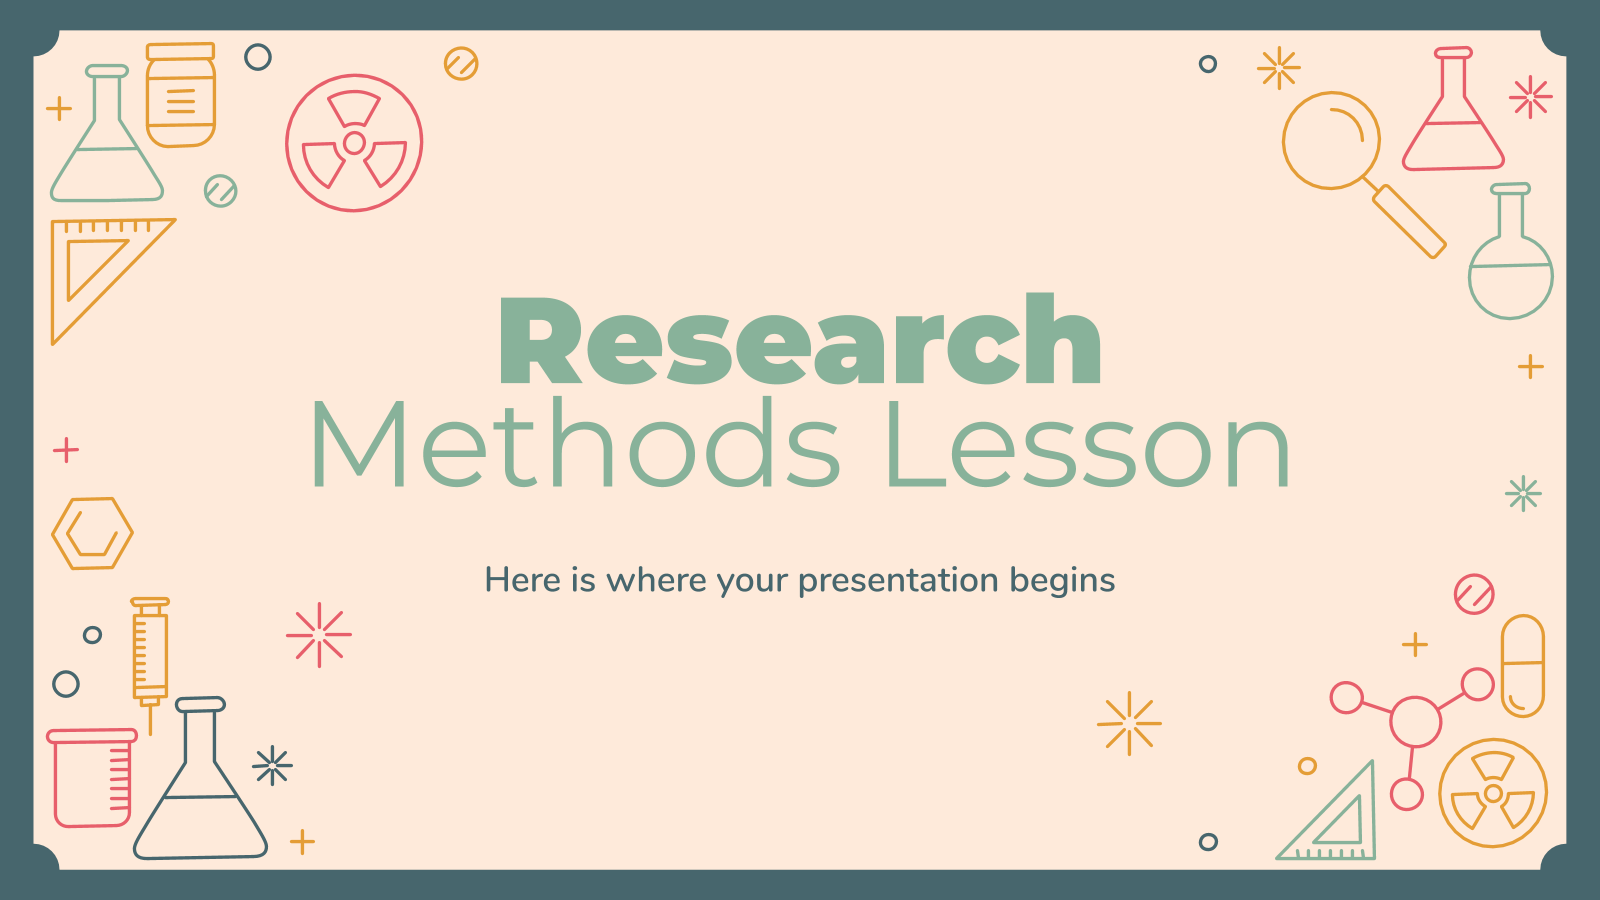 Research Methods Lesson presentation template